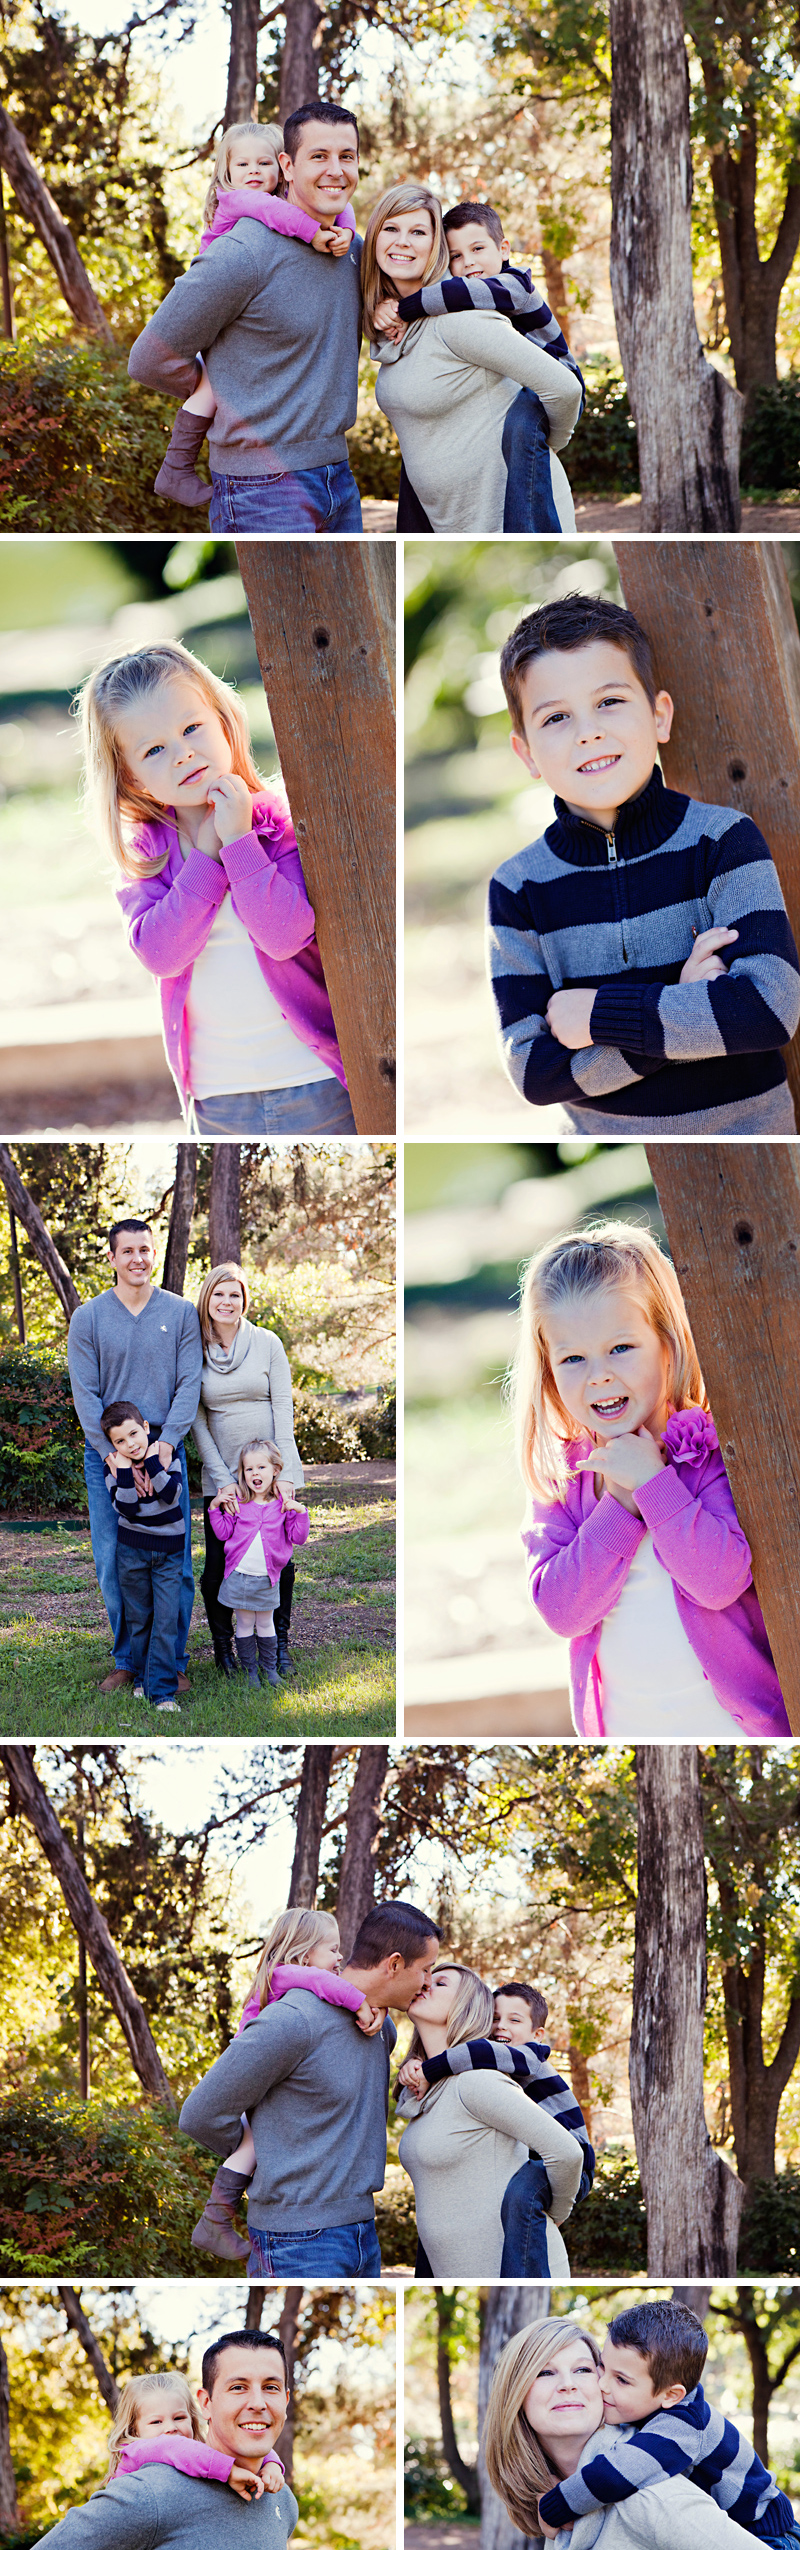 Dallas-Family-Photographerc023